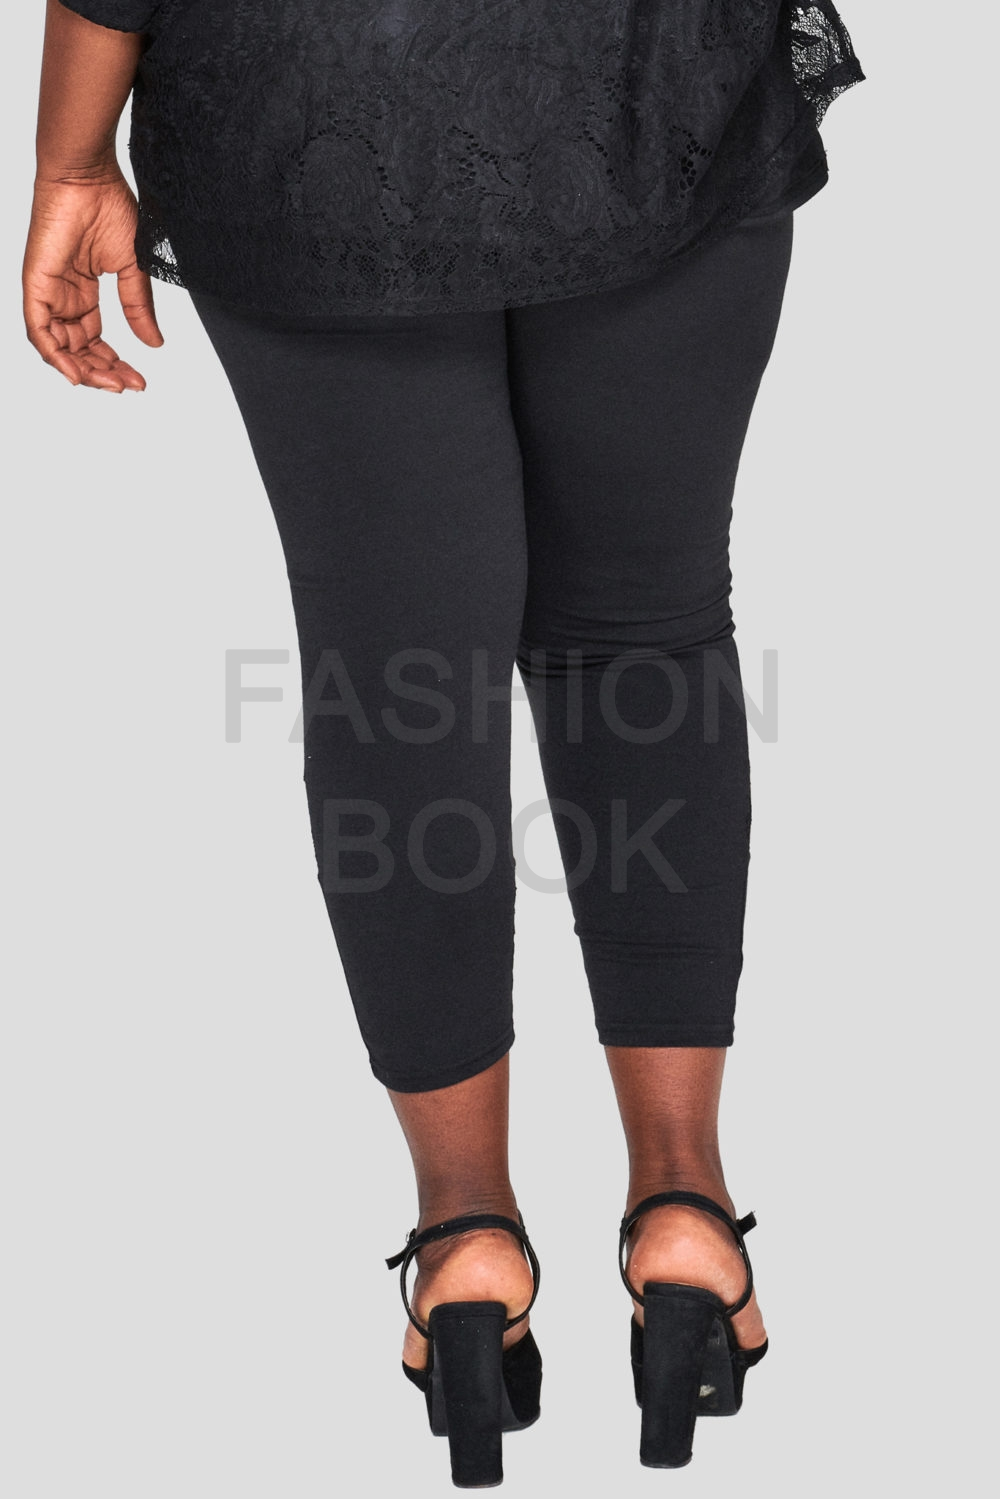 Fashionbook Wholesale Plus Size Lace Legging Black